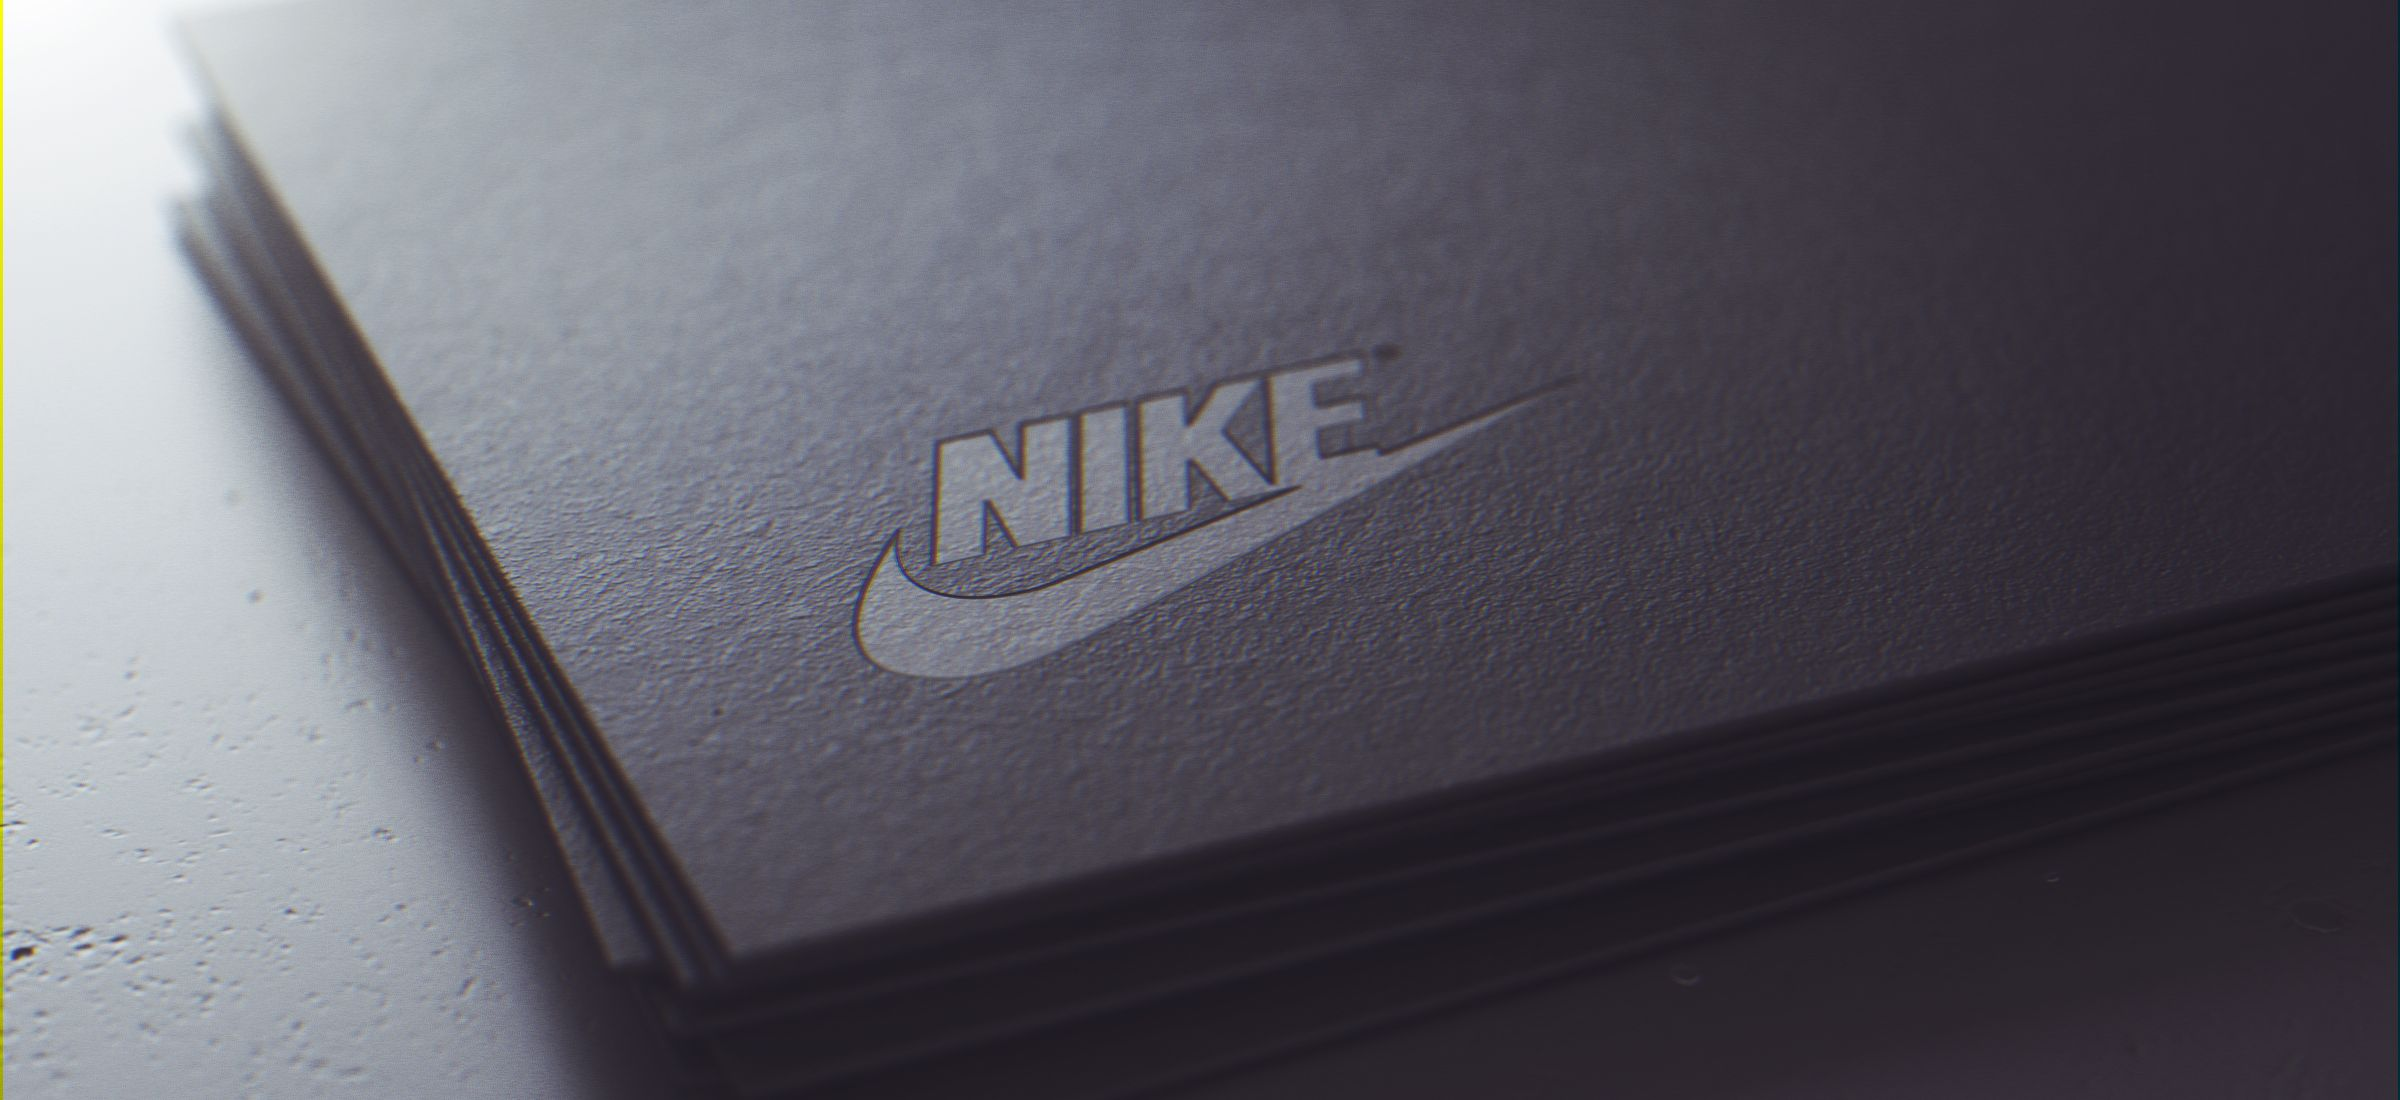 Nike business cards business cards pinterest business cards nike business cards colourmoves